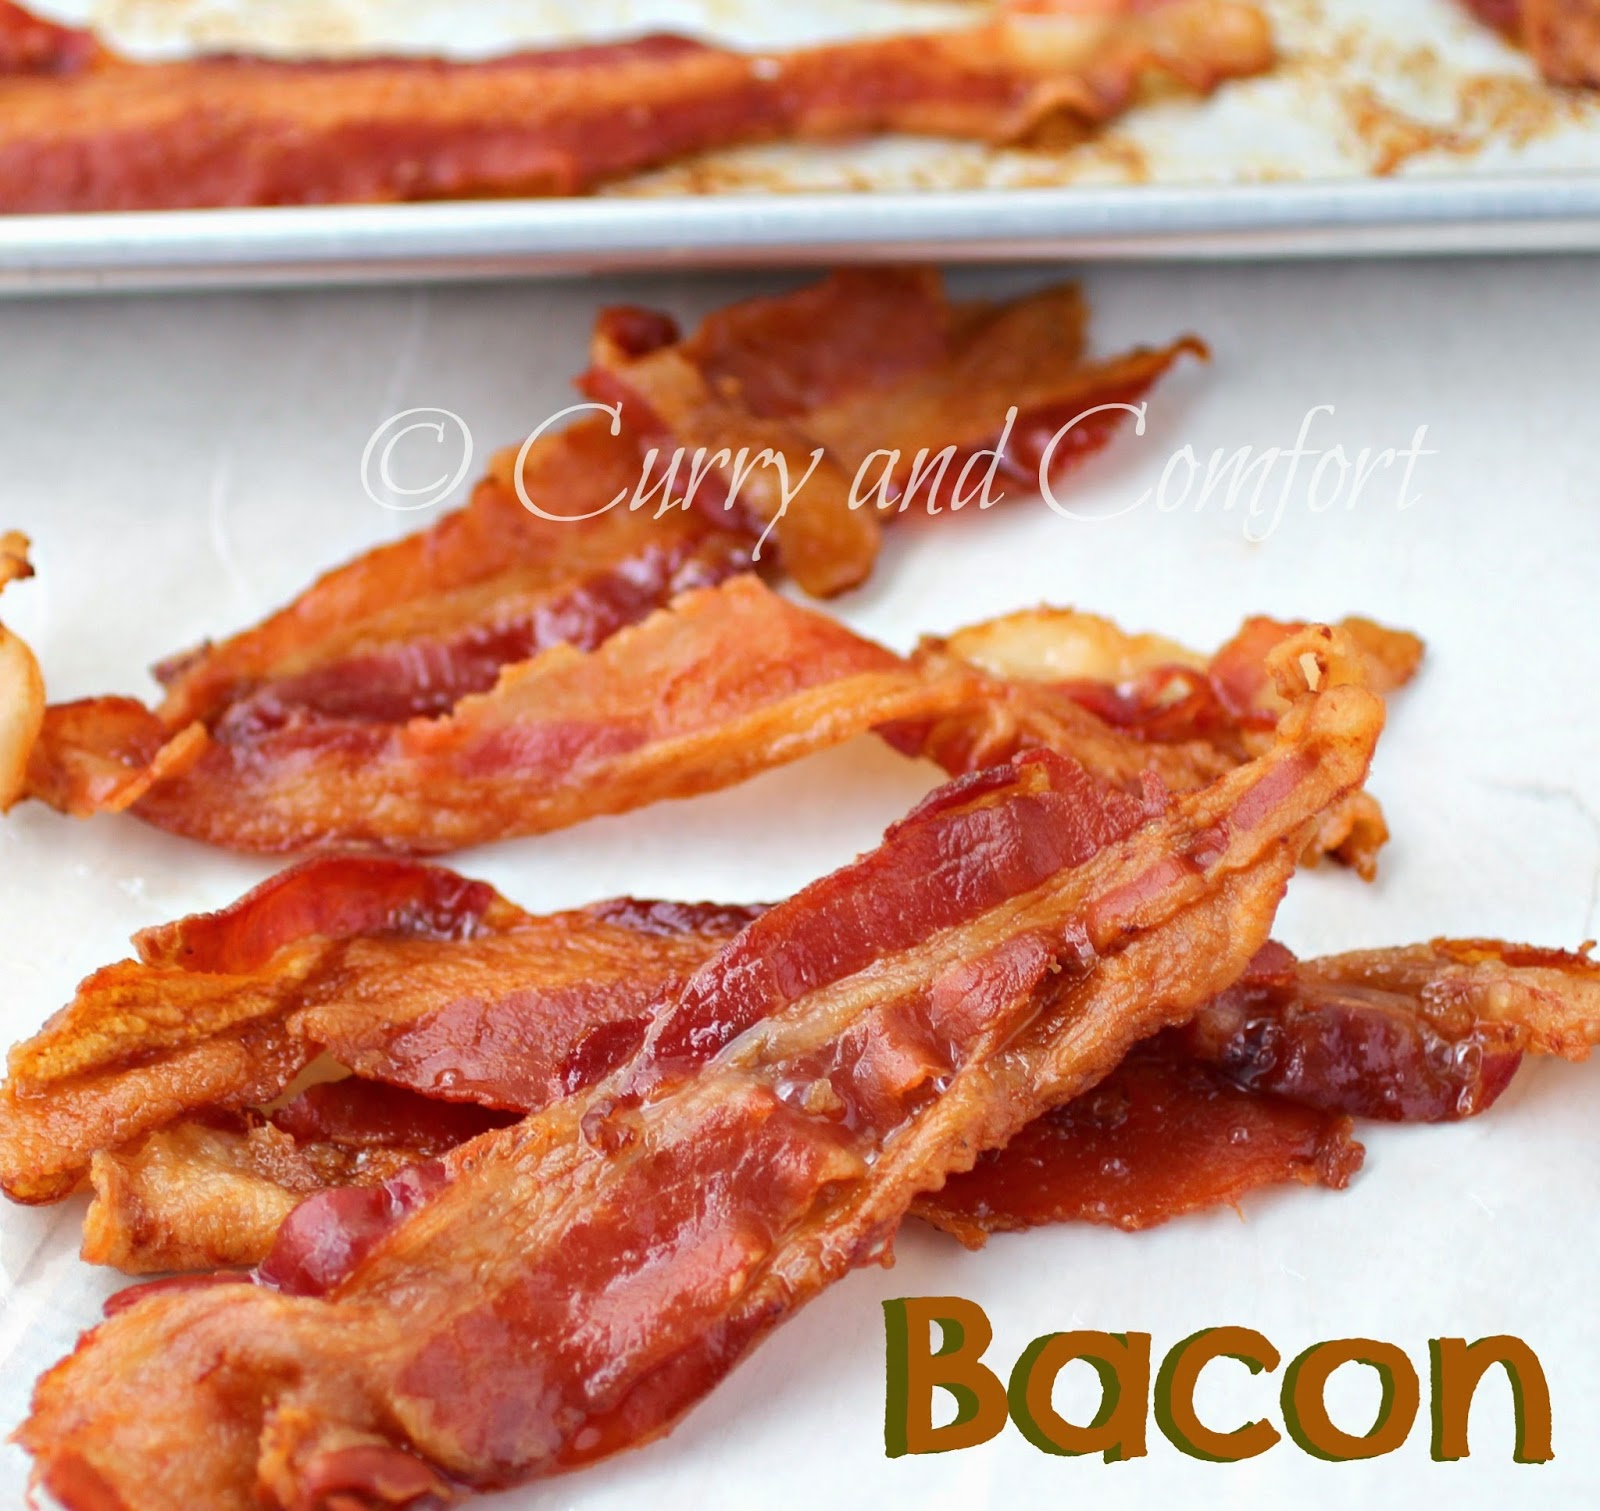 Everyonees Running When They Smell Bacon Cooking In My Kitchen We Love  It For Breakfast, Easy Blt Sandwiches For Lunch Or Even To Crumble On A  Salad